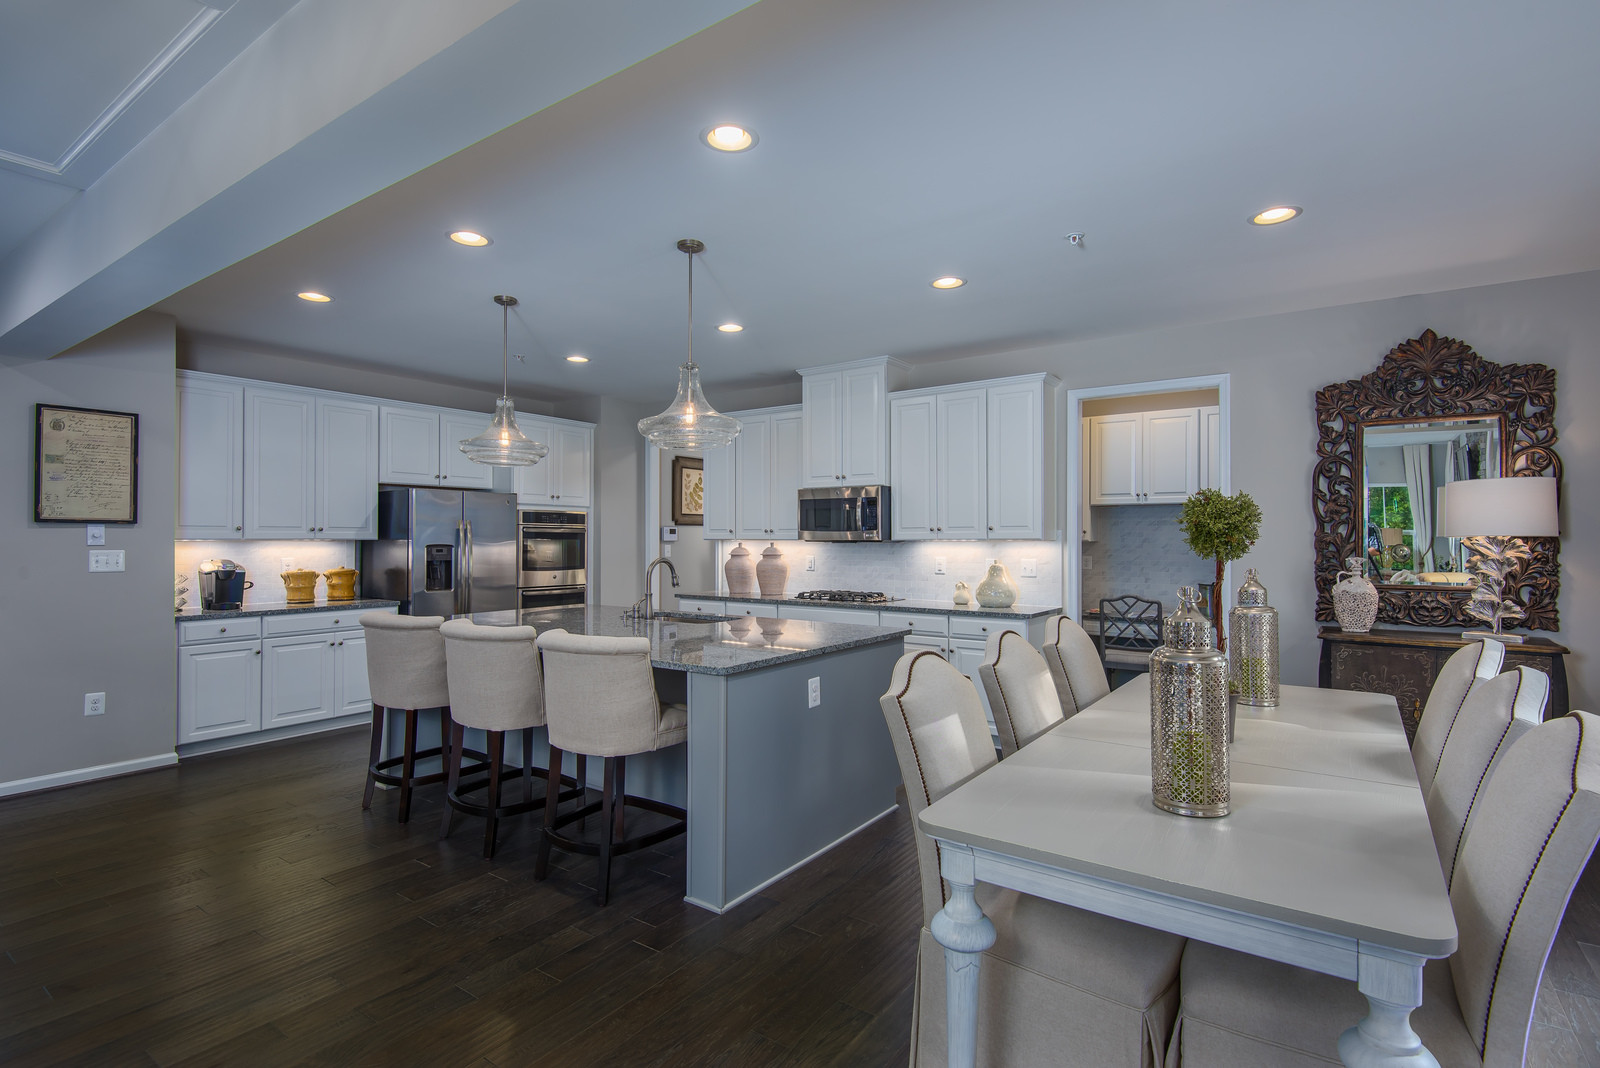 New homes for sale at cannon hill in upper freehold nj for Nw home builders